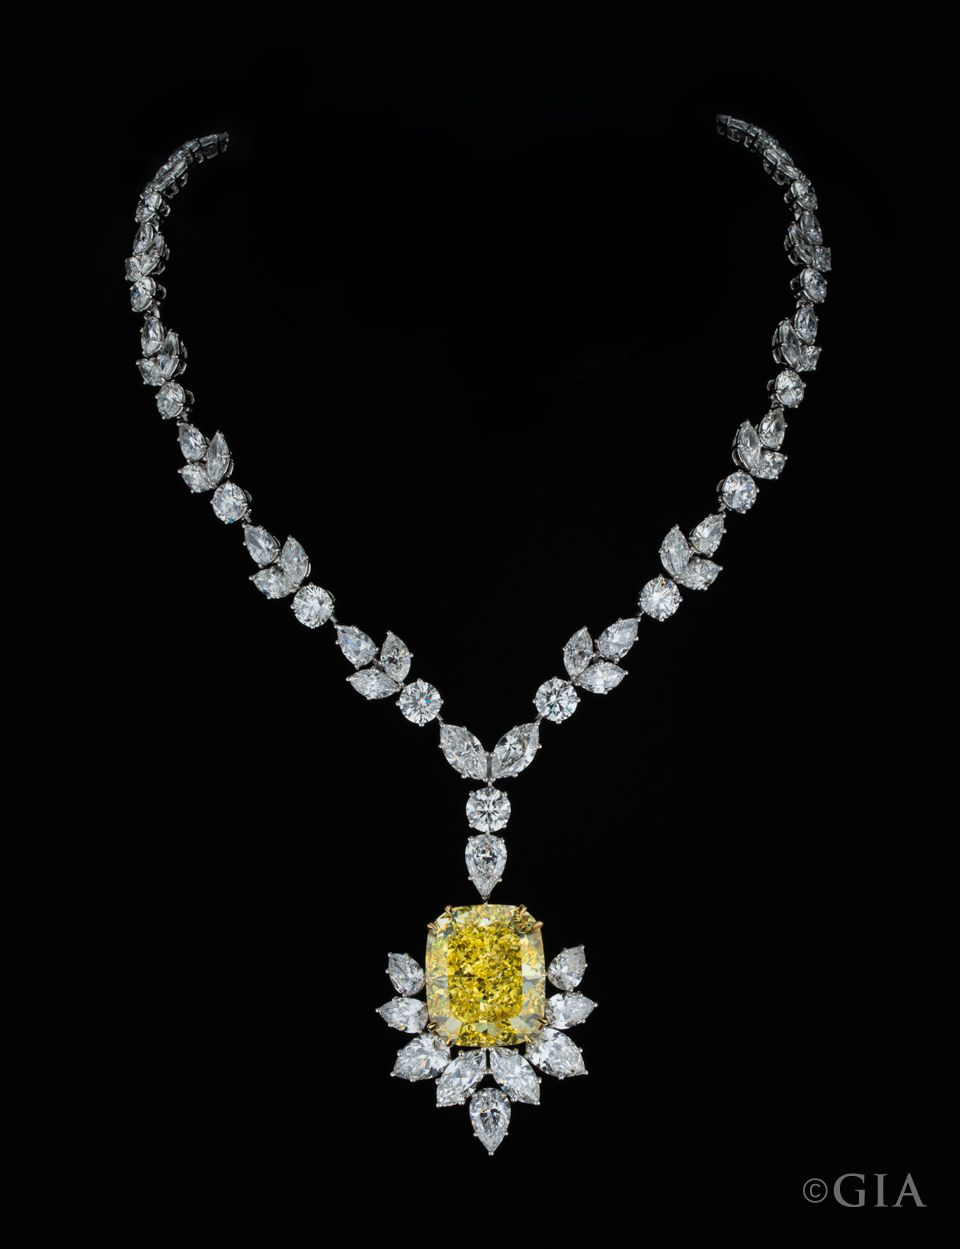 A 54 29 Ct Fancy Intense Yellow Diamond Suspended From A